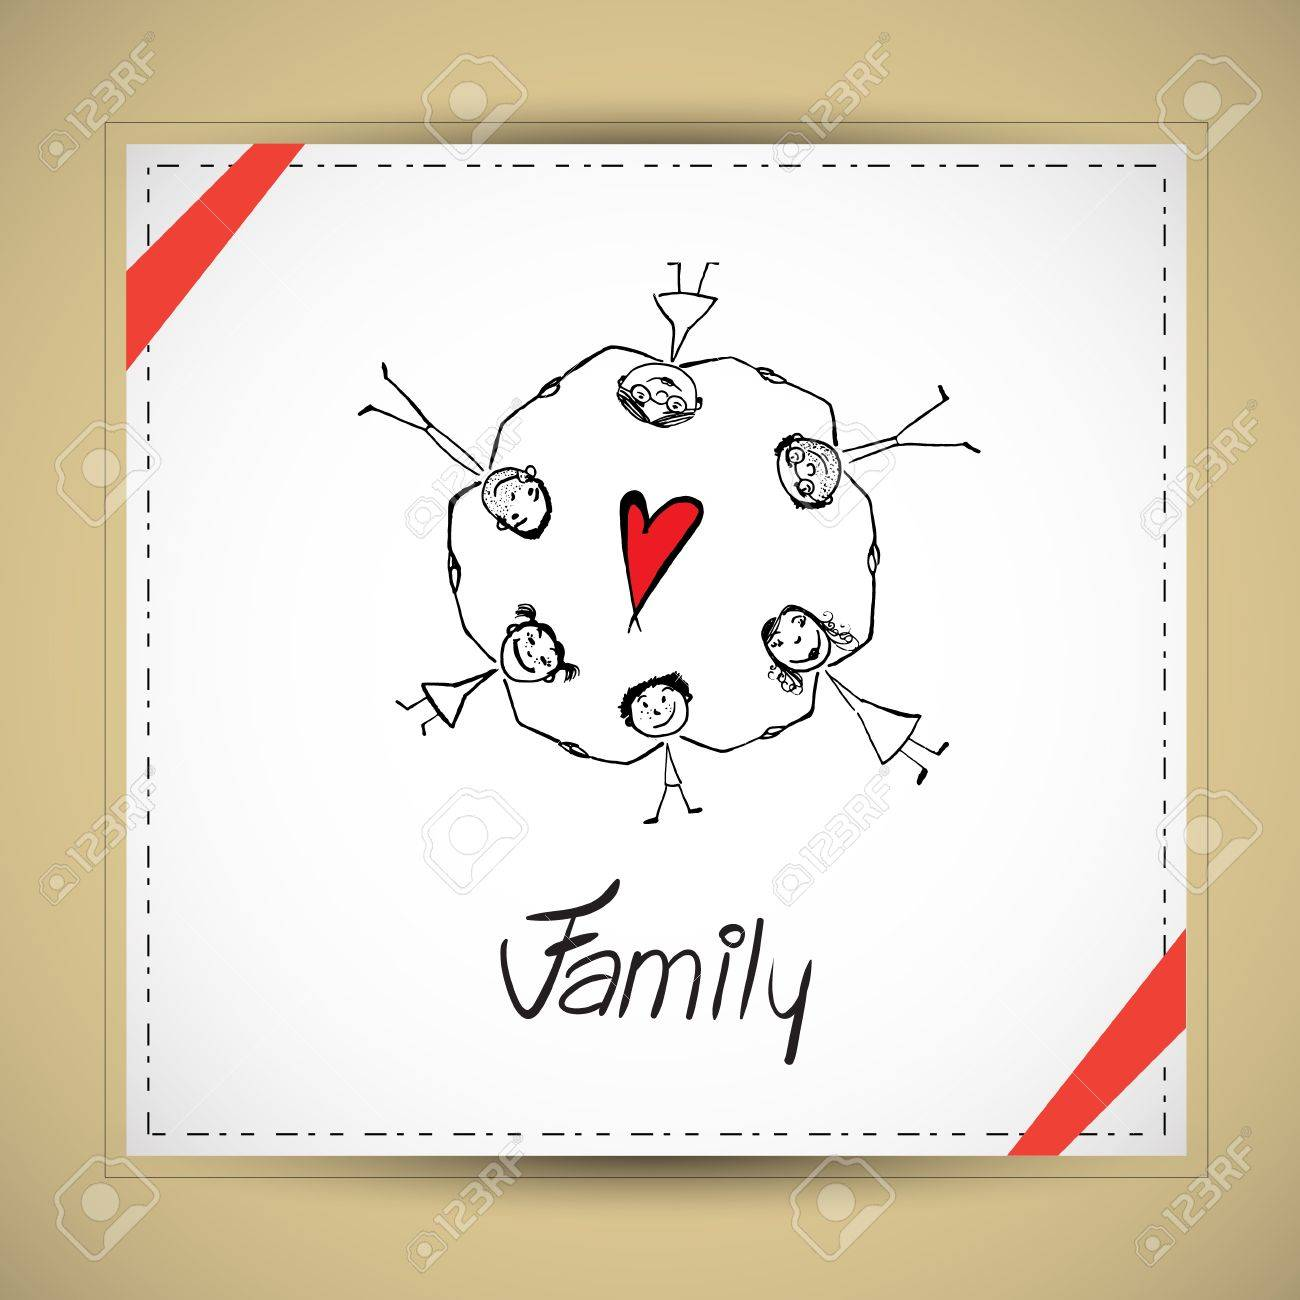 Vector illustration with hand drawn happy family Stock Vector - 21471192